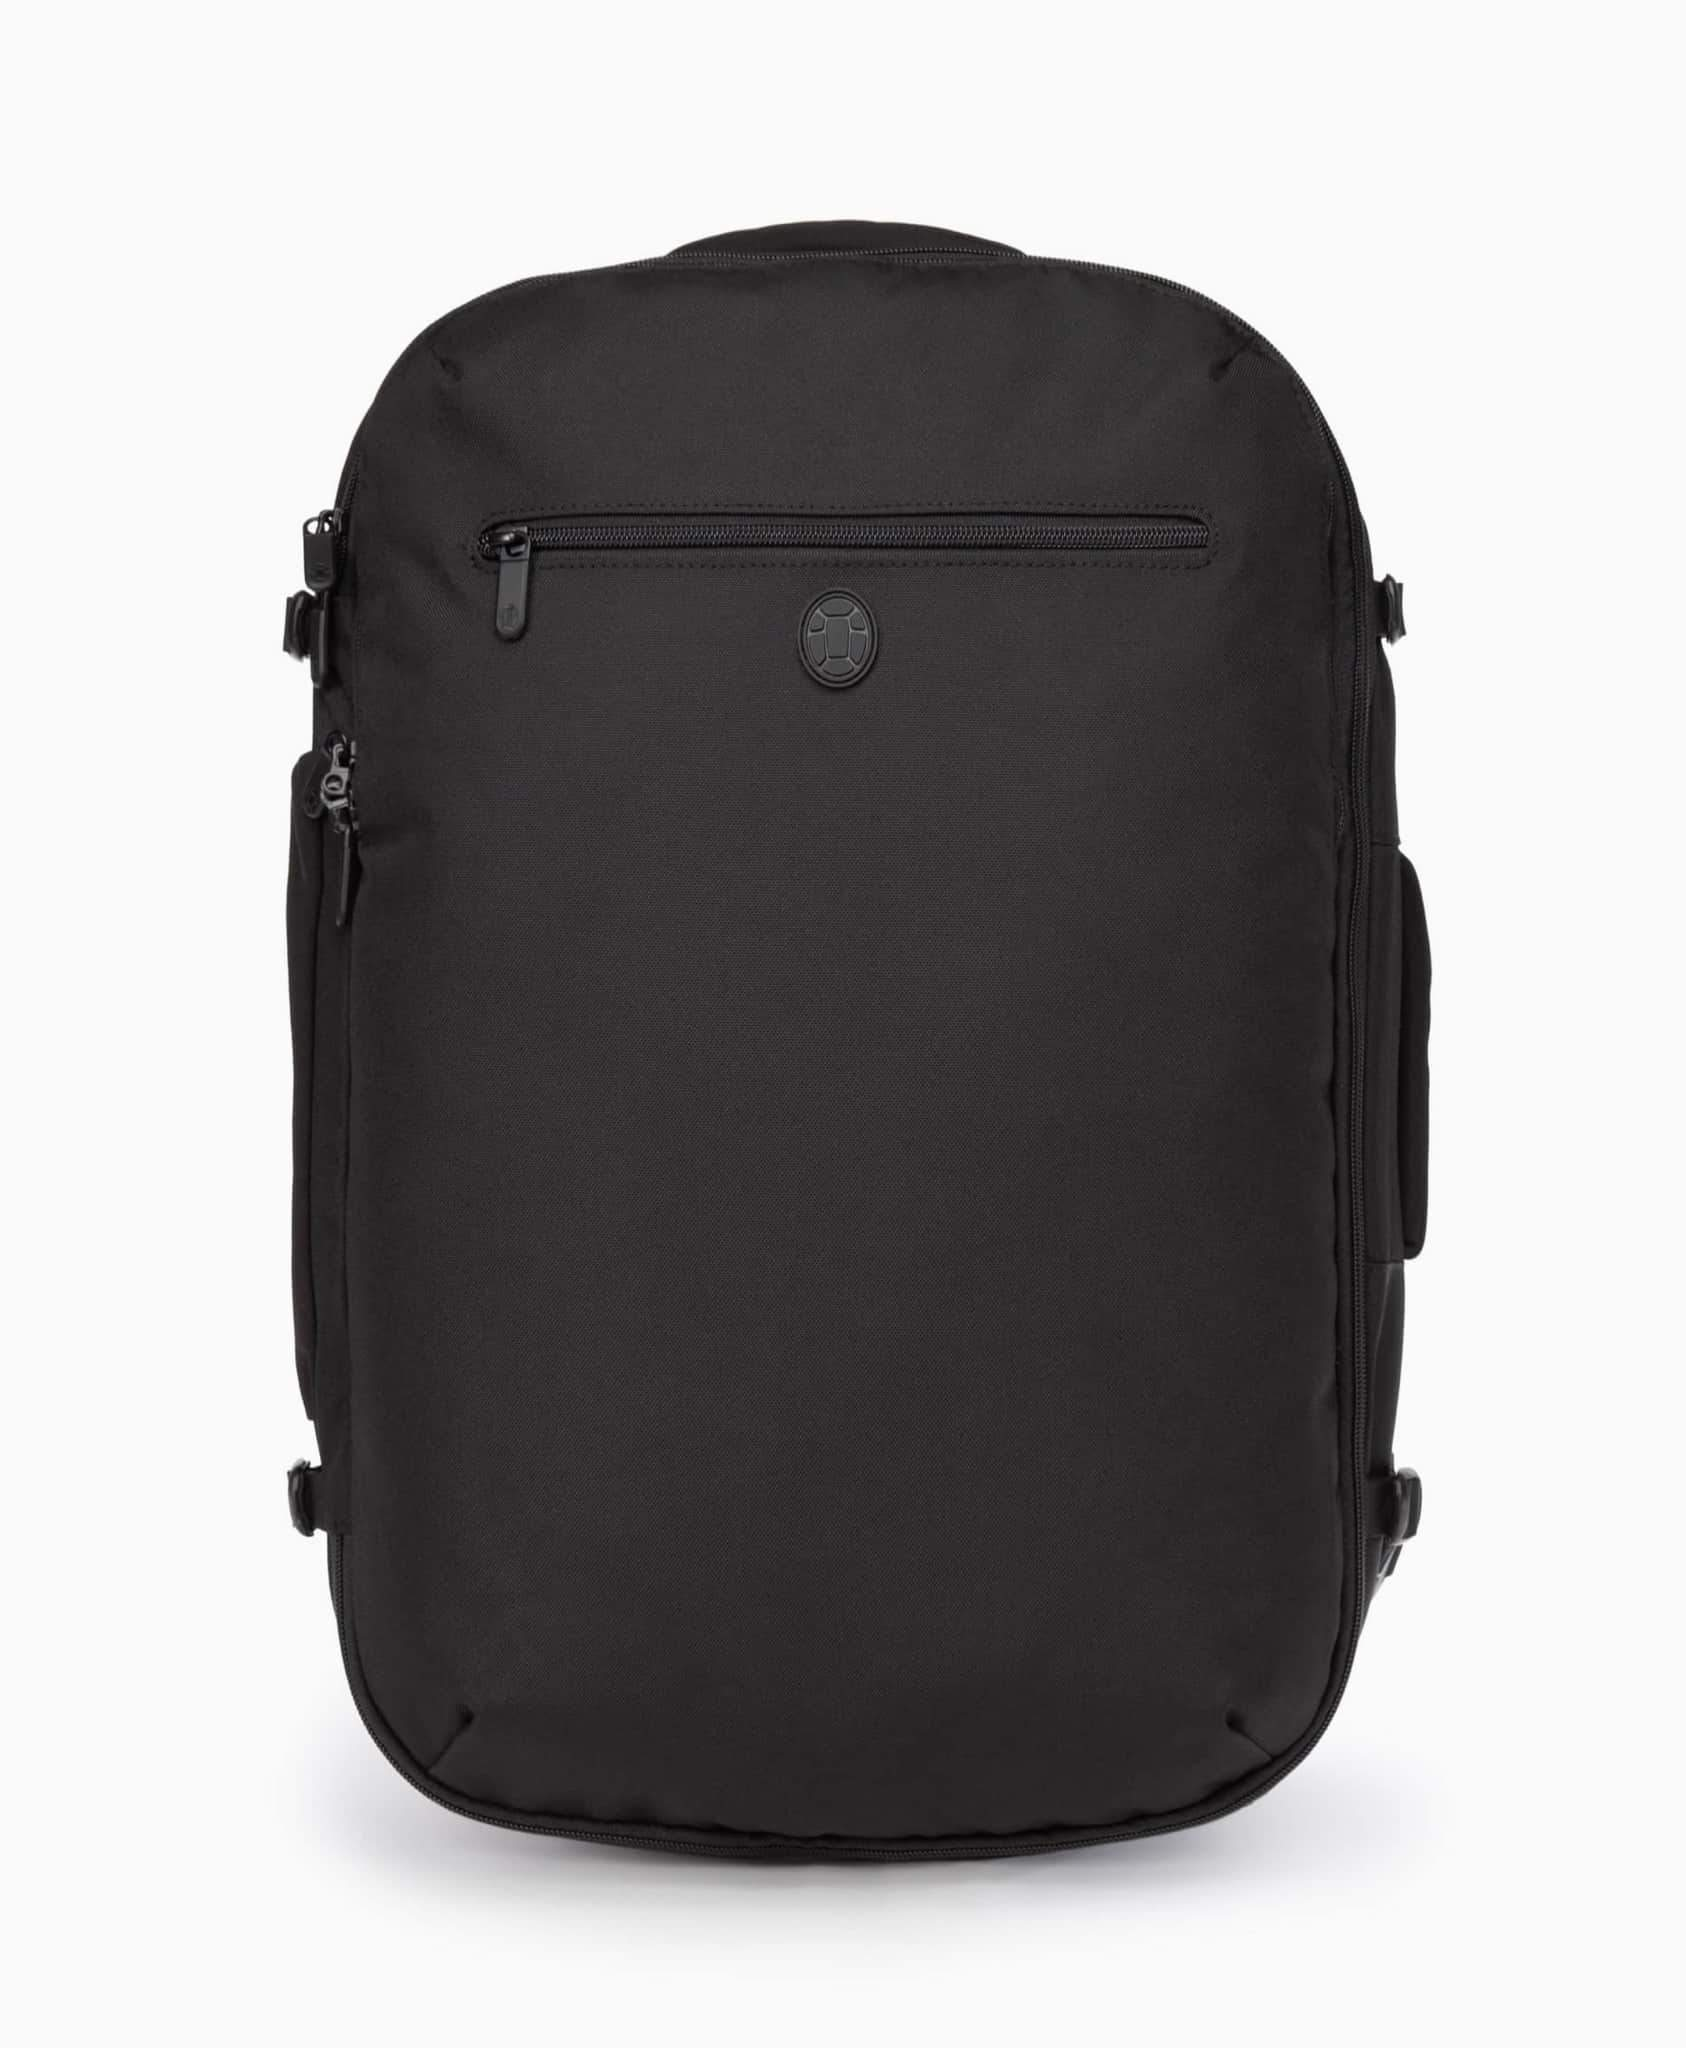 product/ 45L: a larger carry on that's allowed on most airlines